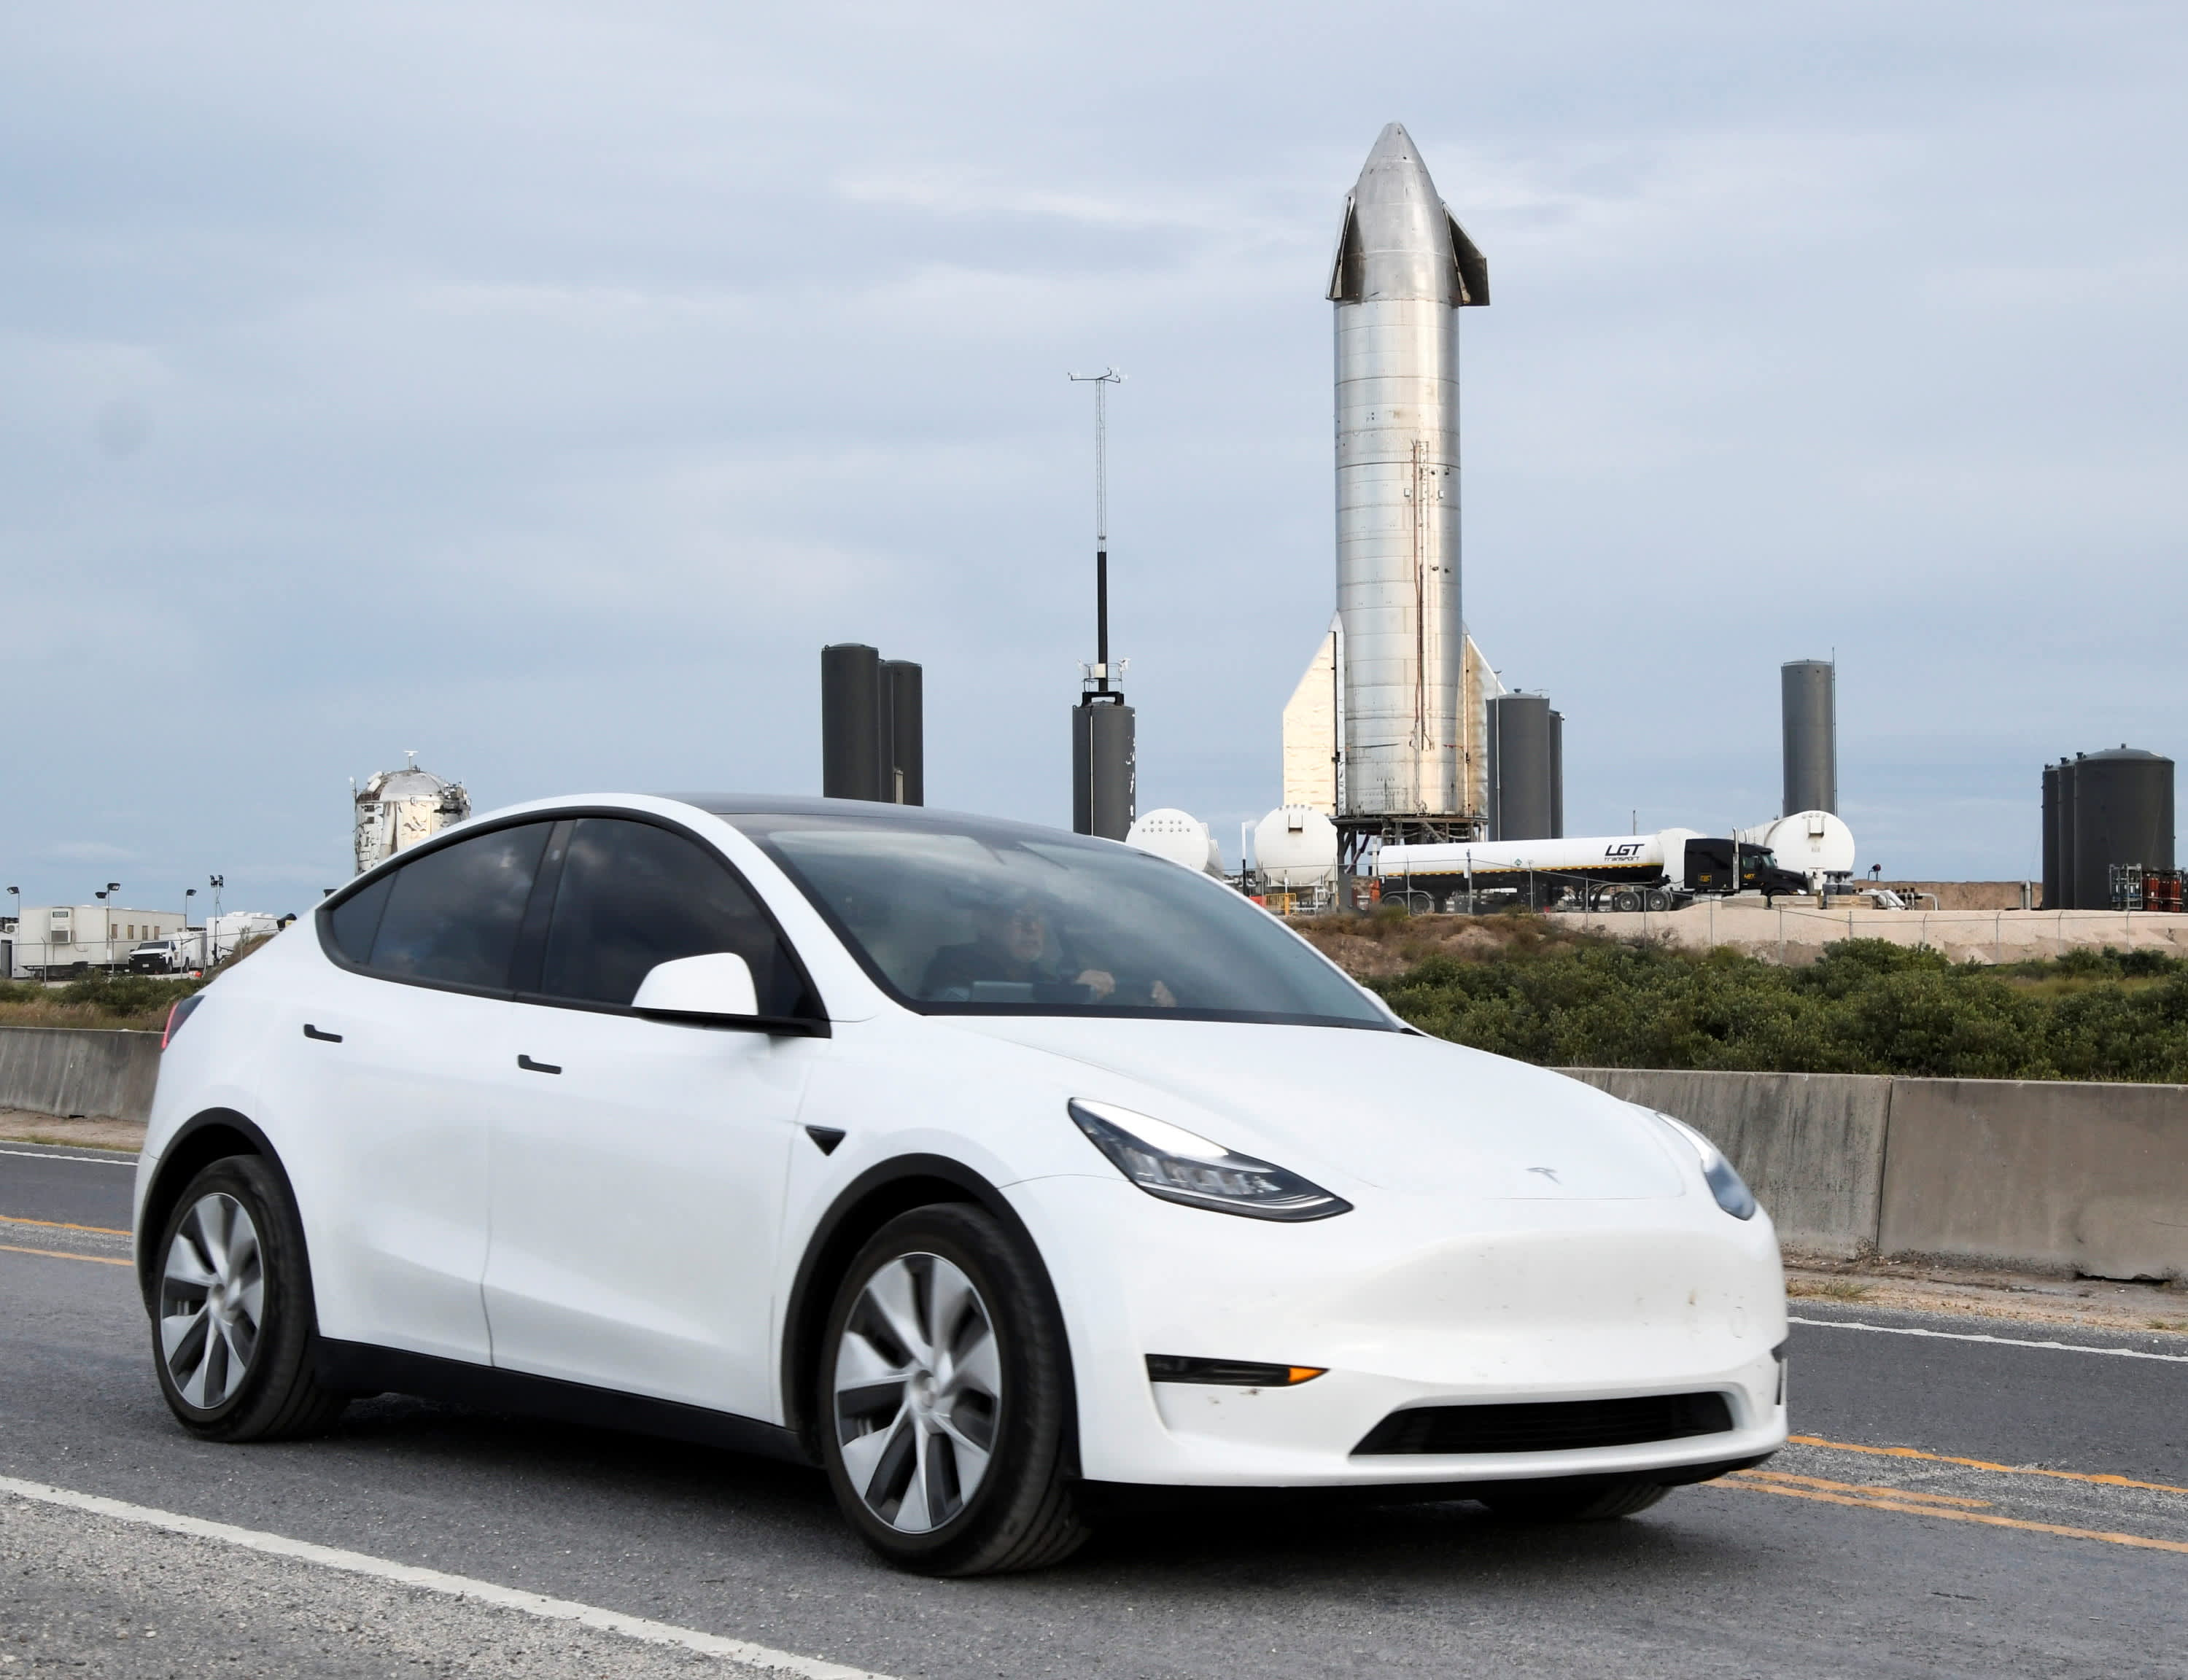 Tesla moves its headquarters from California to Texas